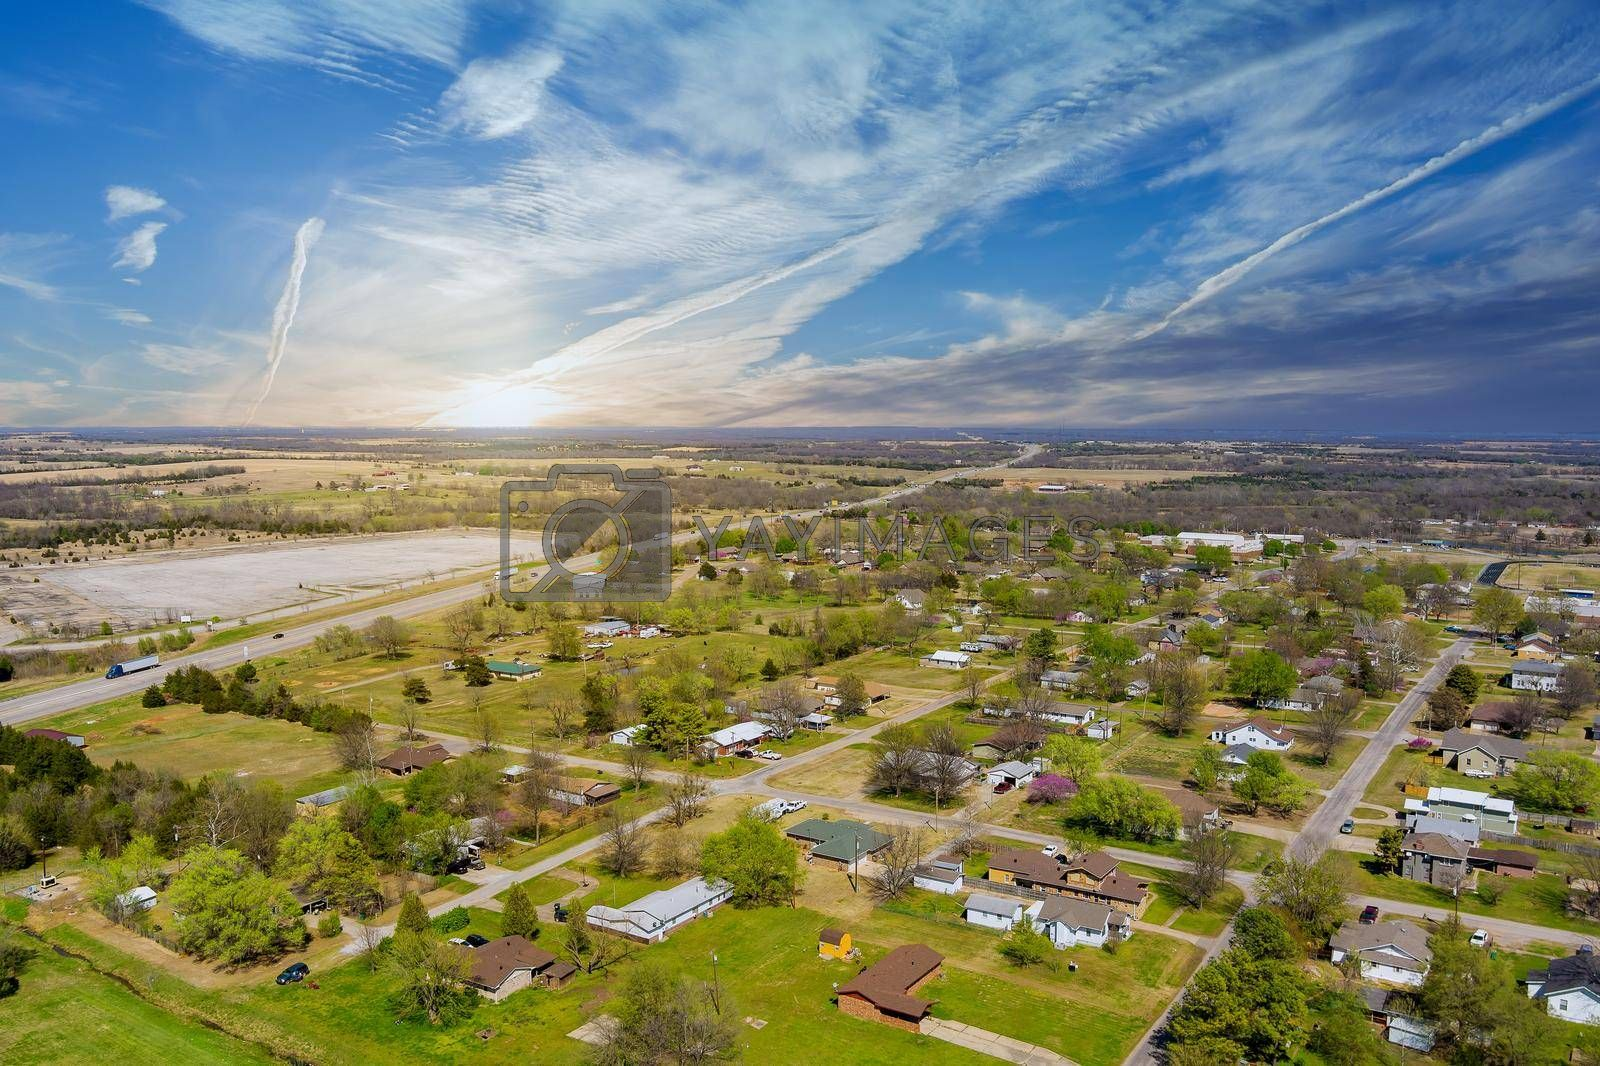 Aerial view of residential district at suburban development with a Stroud Oklahoma USA